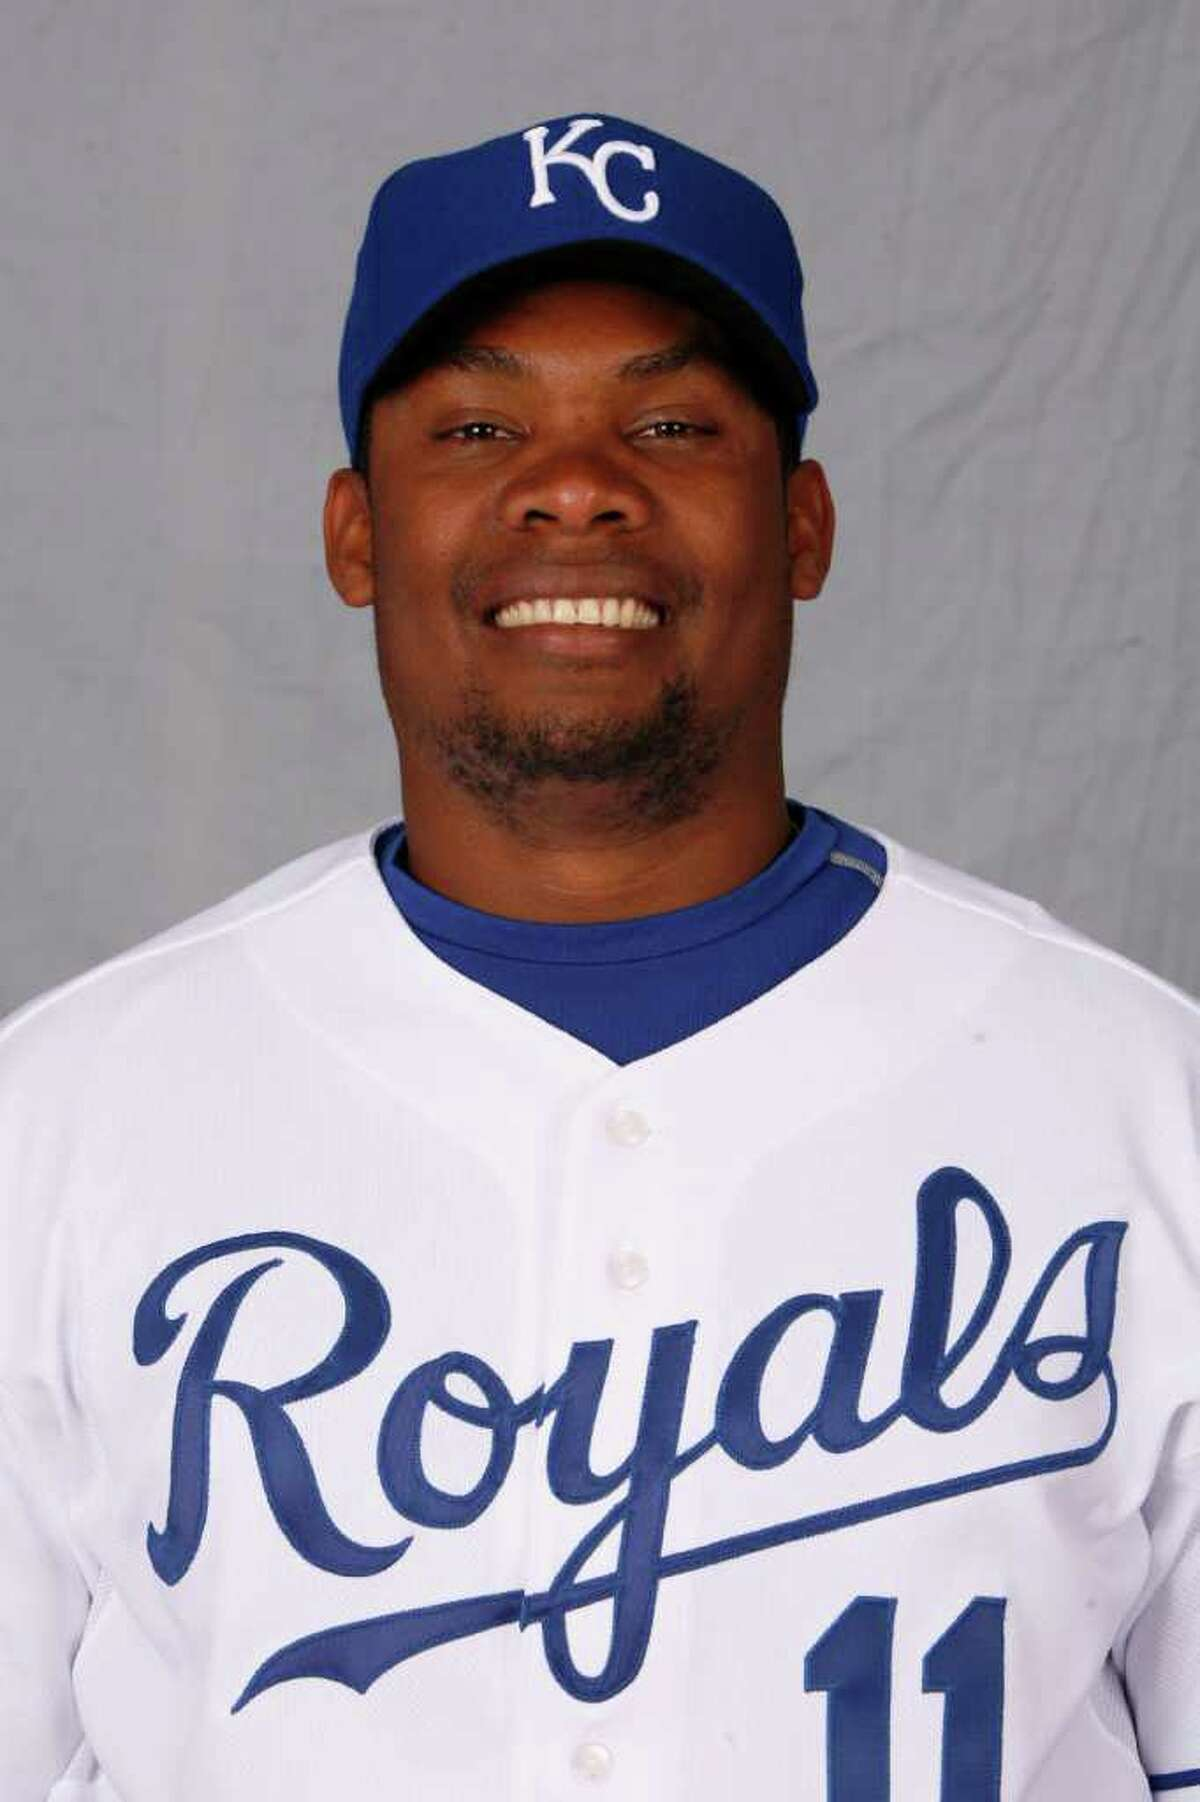 This is a 2008 file photo of Jose Guillen of the Kansas City Royals baseball team. Guillen is among at least four pro baseball players who received performance-enhancing drug presriptions from a Florida dentist who lacked medical credentials and has pleaded guilty to federal drug charges. (AP Photo/Charlie Riedel)